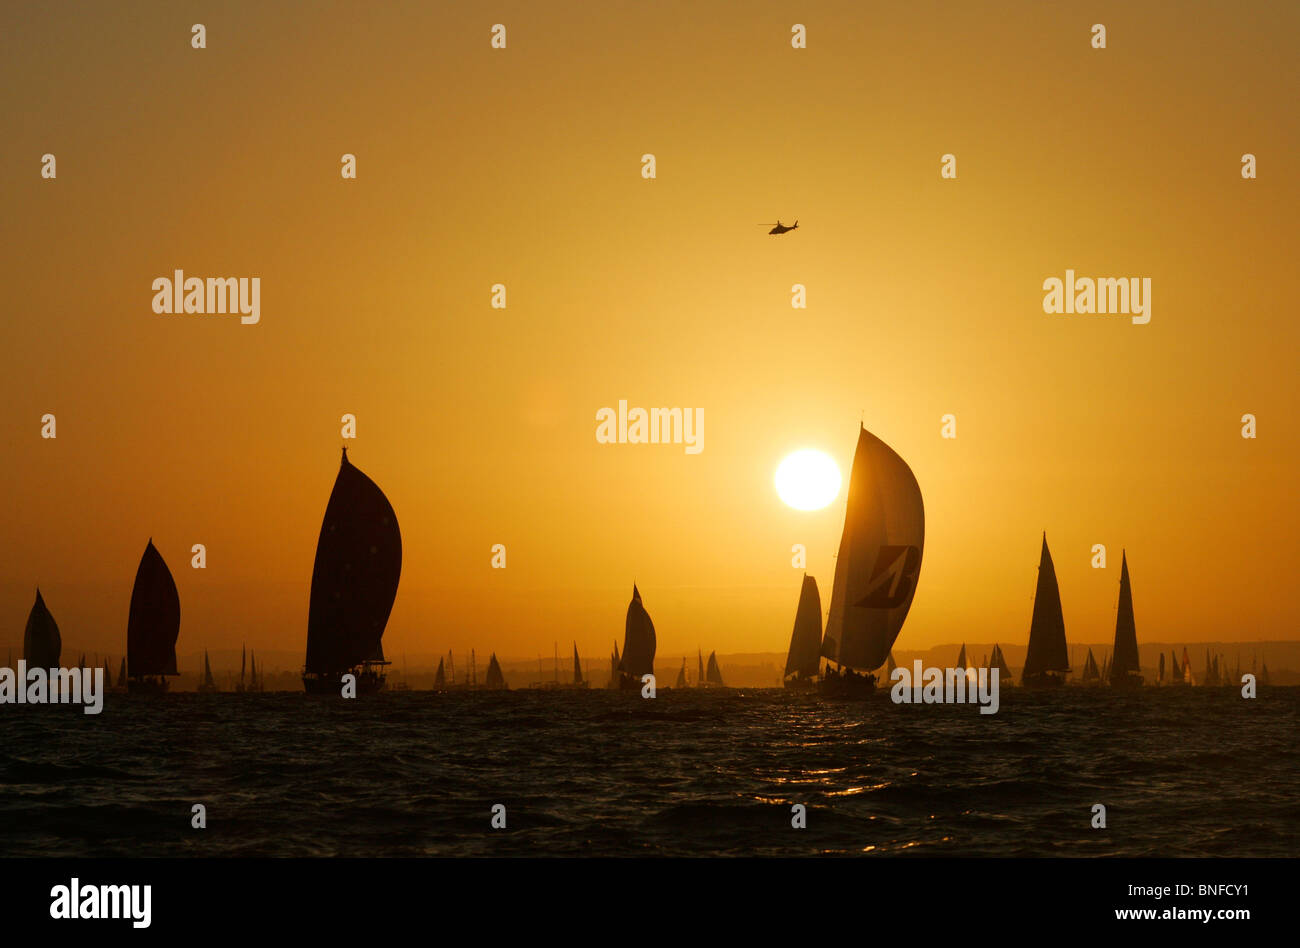 START, ROUND THE ISLAND RACE, SUNRISE, Round the Island Race - Stock Image